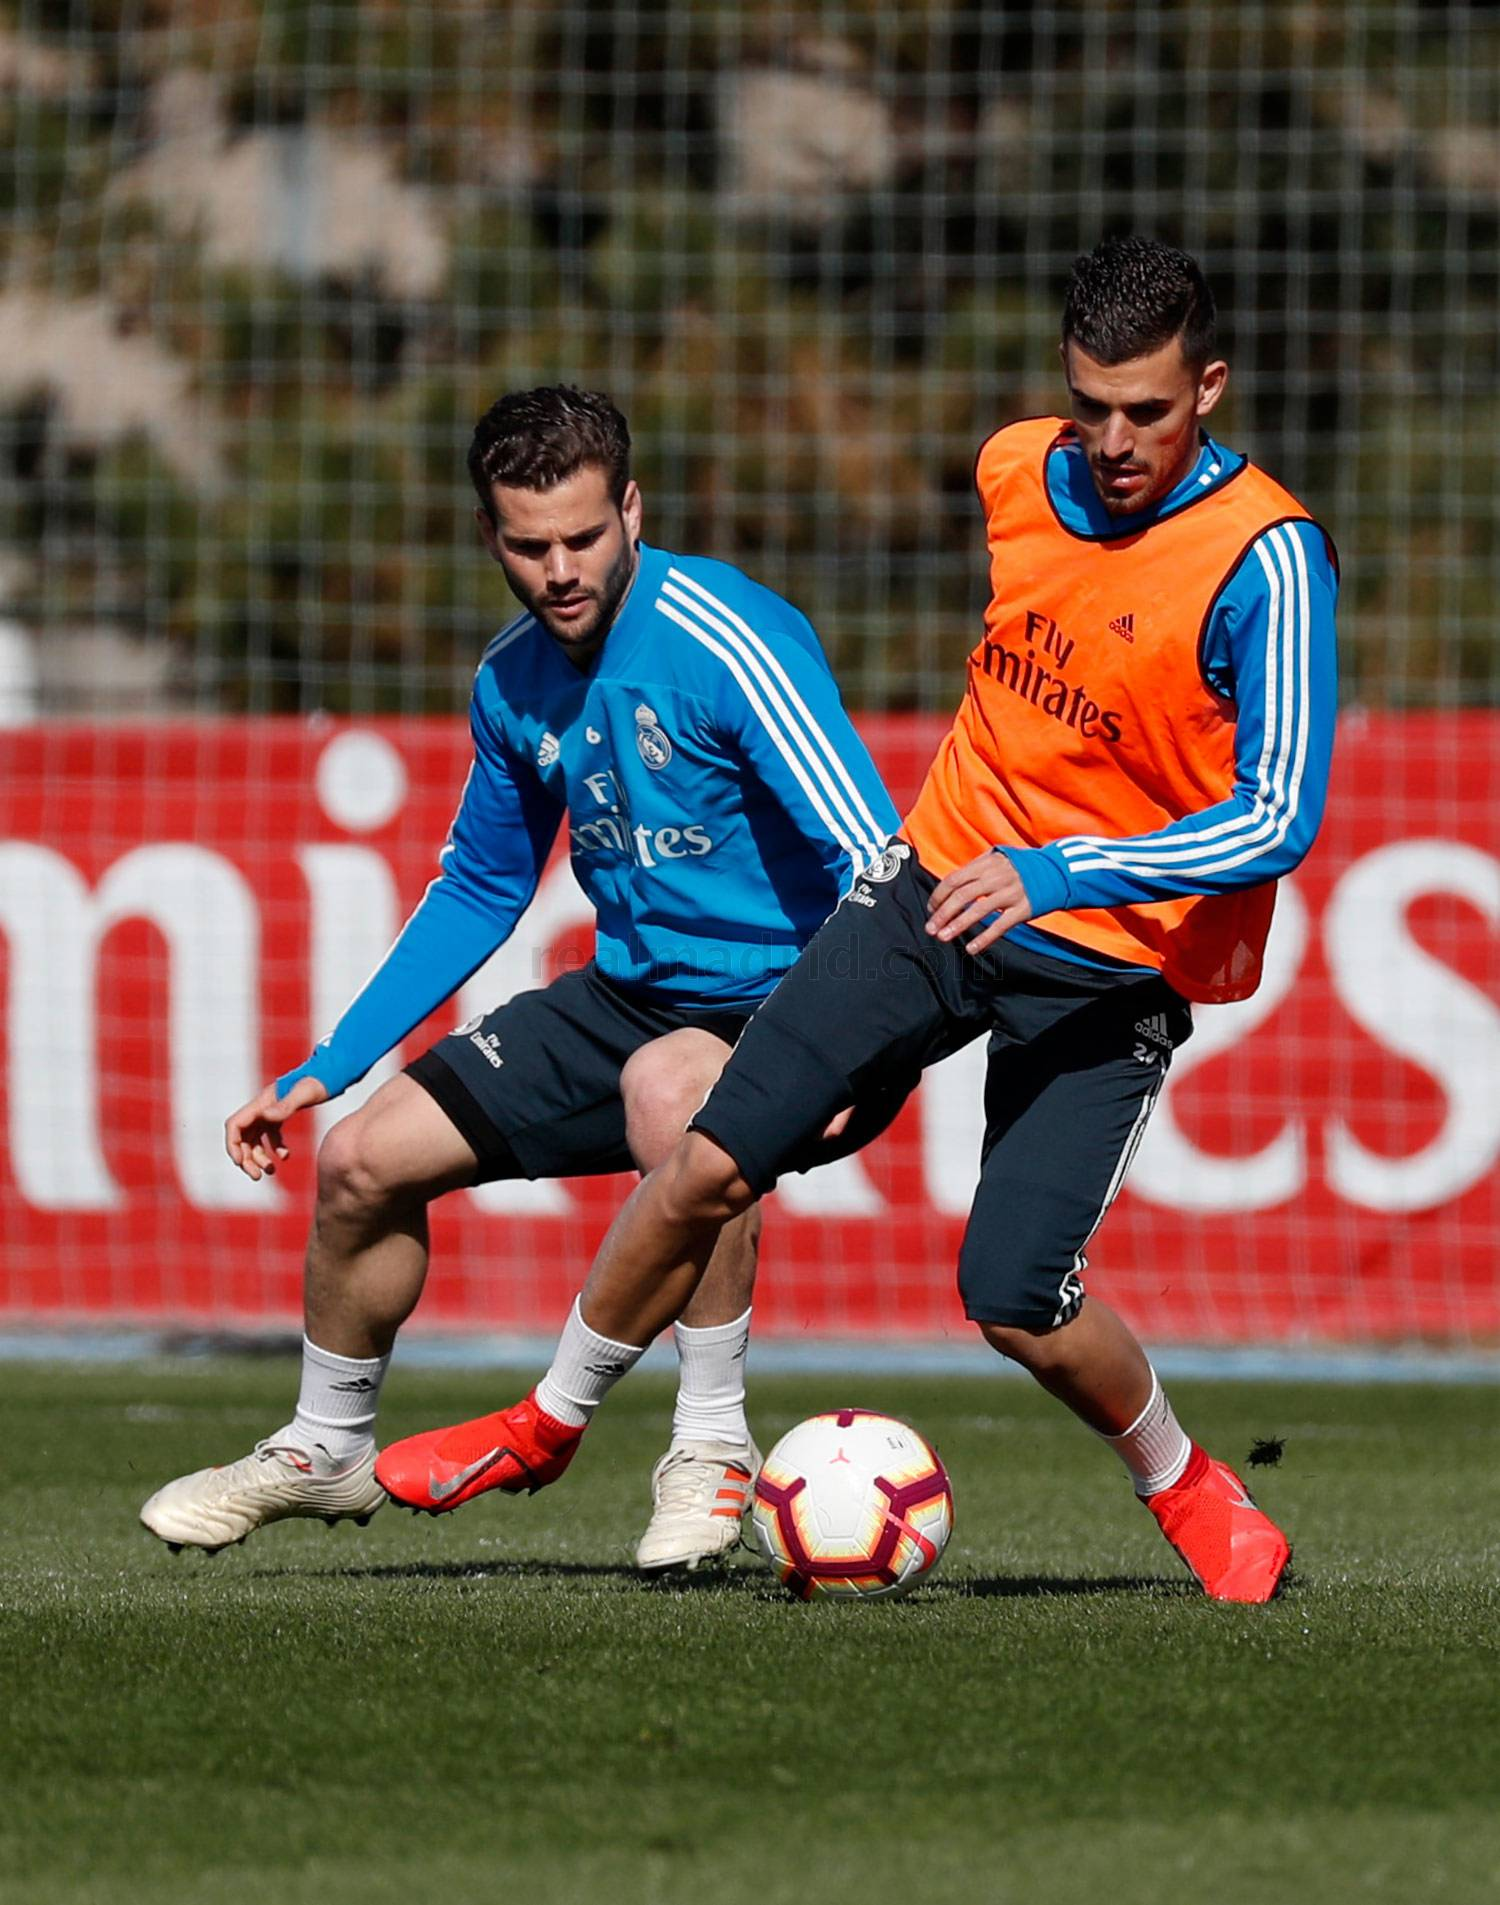 Real Madrid - Entrenamiento del Real Madrid - 23-02-2019